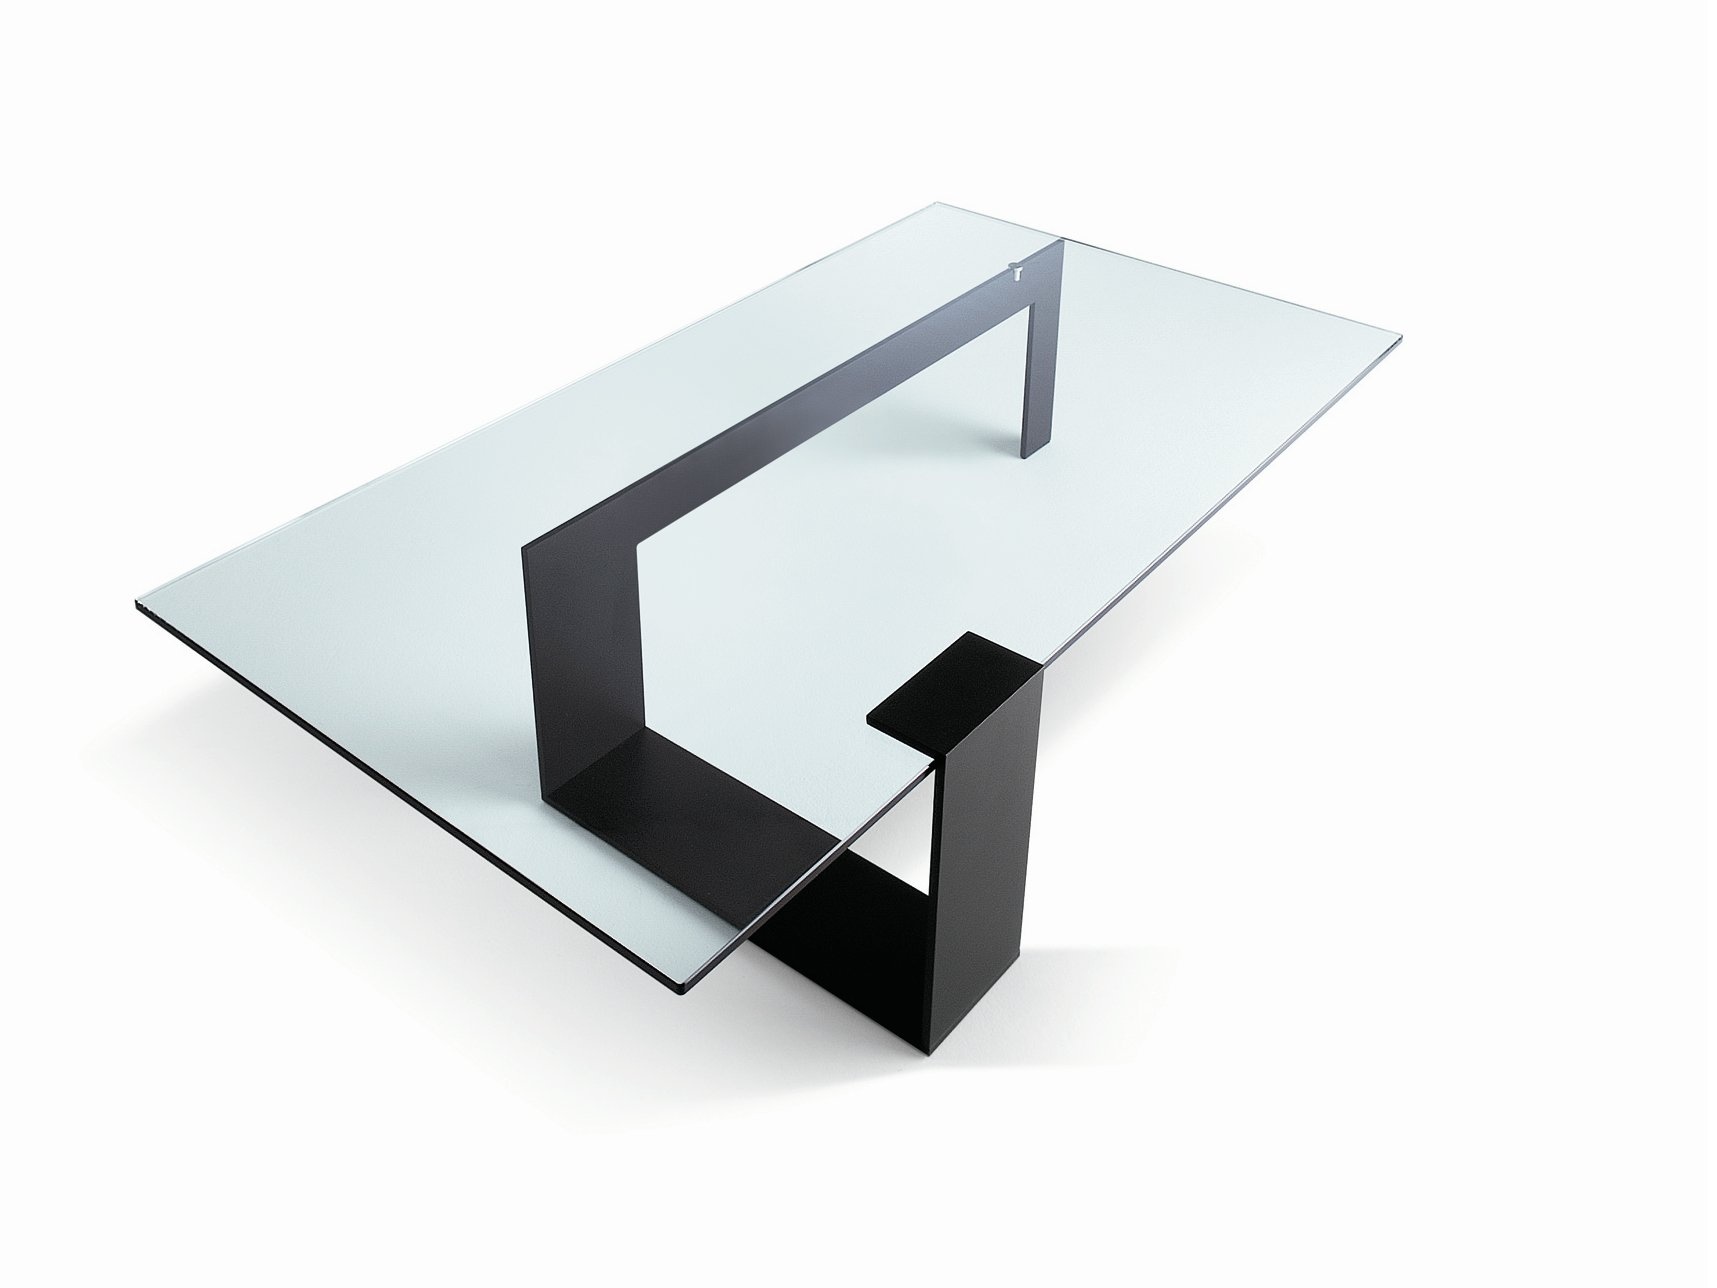 table basse en verre plinsky by t d tonelli design design. Black Bedroom Furniture Sets. Home Design Ideas